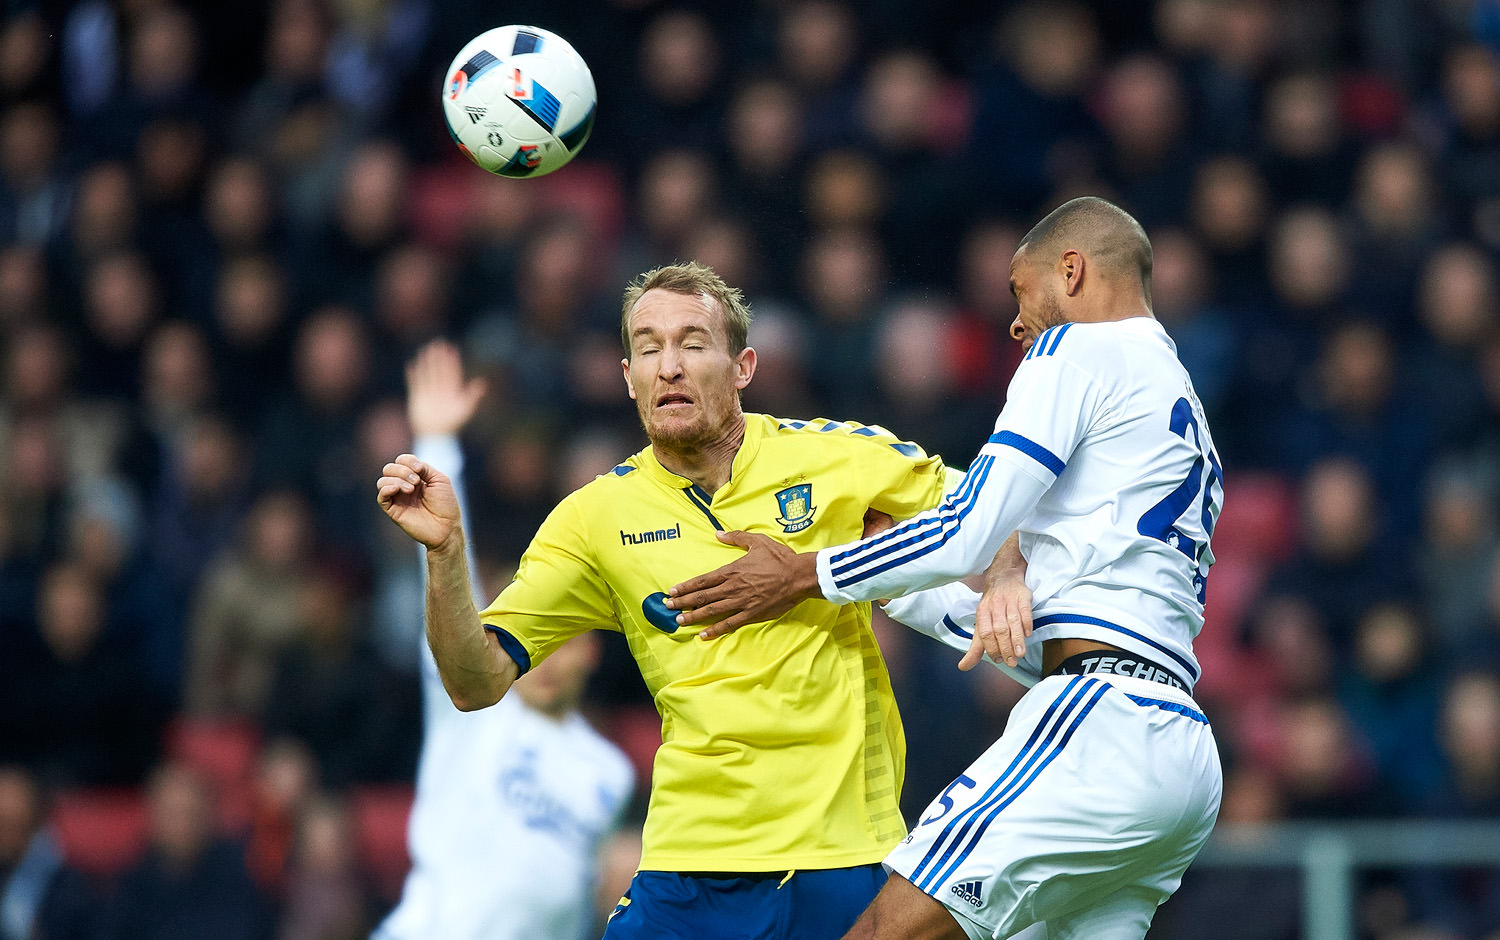 COPENHAGEN, DENMARK - APRIL 17: Thomas Kahlenberg of Brondby IF and Mathias Zanka Jorgensen of FC Copenhagen compete for the ball during the Danish Alka Superliga match between FC Copenhagen and Brondby IF at Telia Parken Stadium on April 17, 2016 in Copenhagen, Denmark. (Photo by Lars Ronbog / FrontZoneSport via Getty Images)